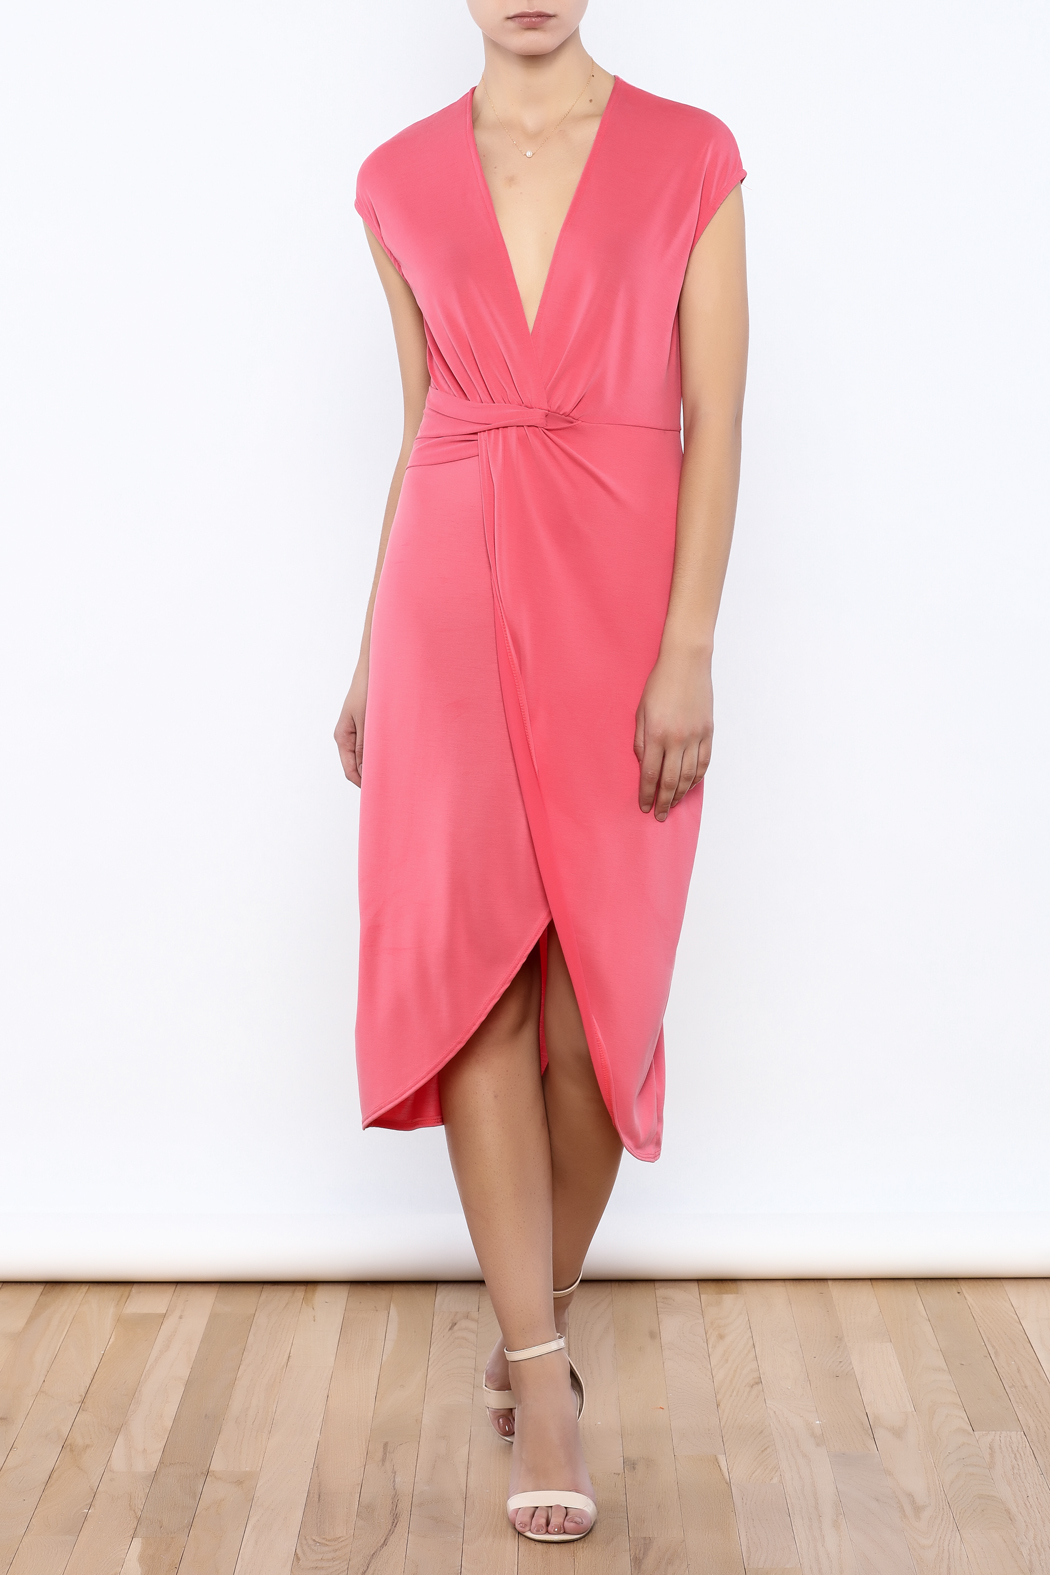 Bacio Coral Dress - Main Image